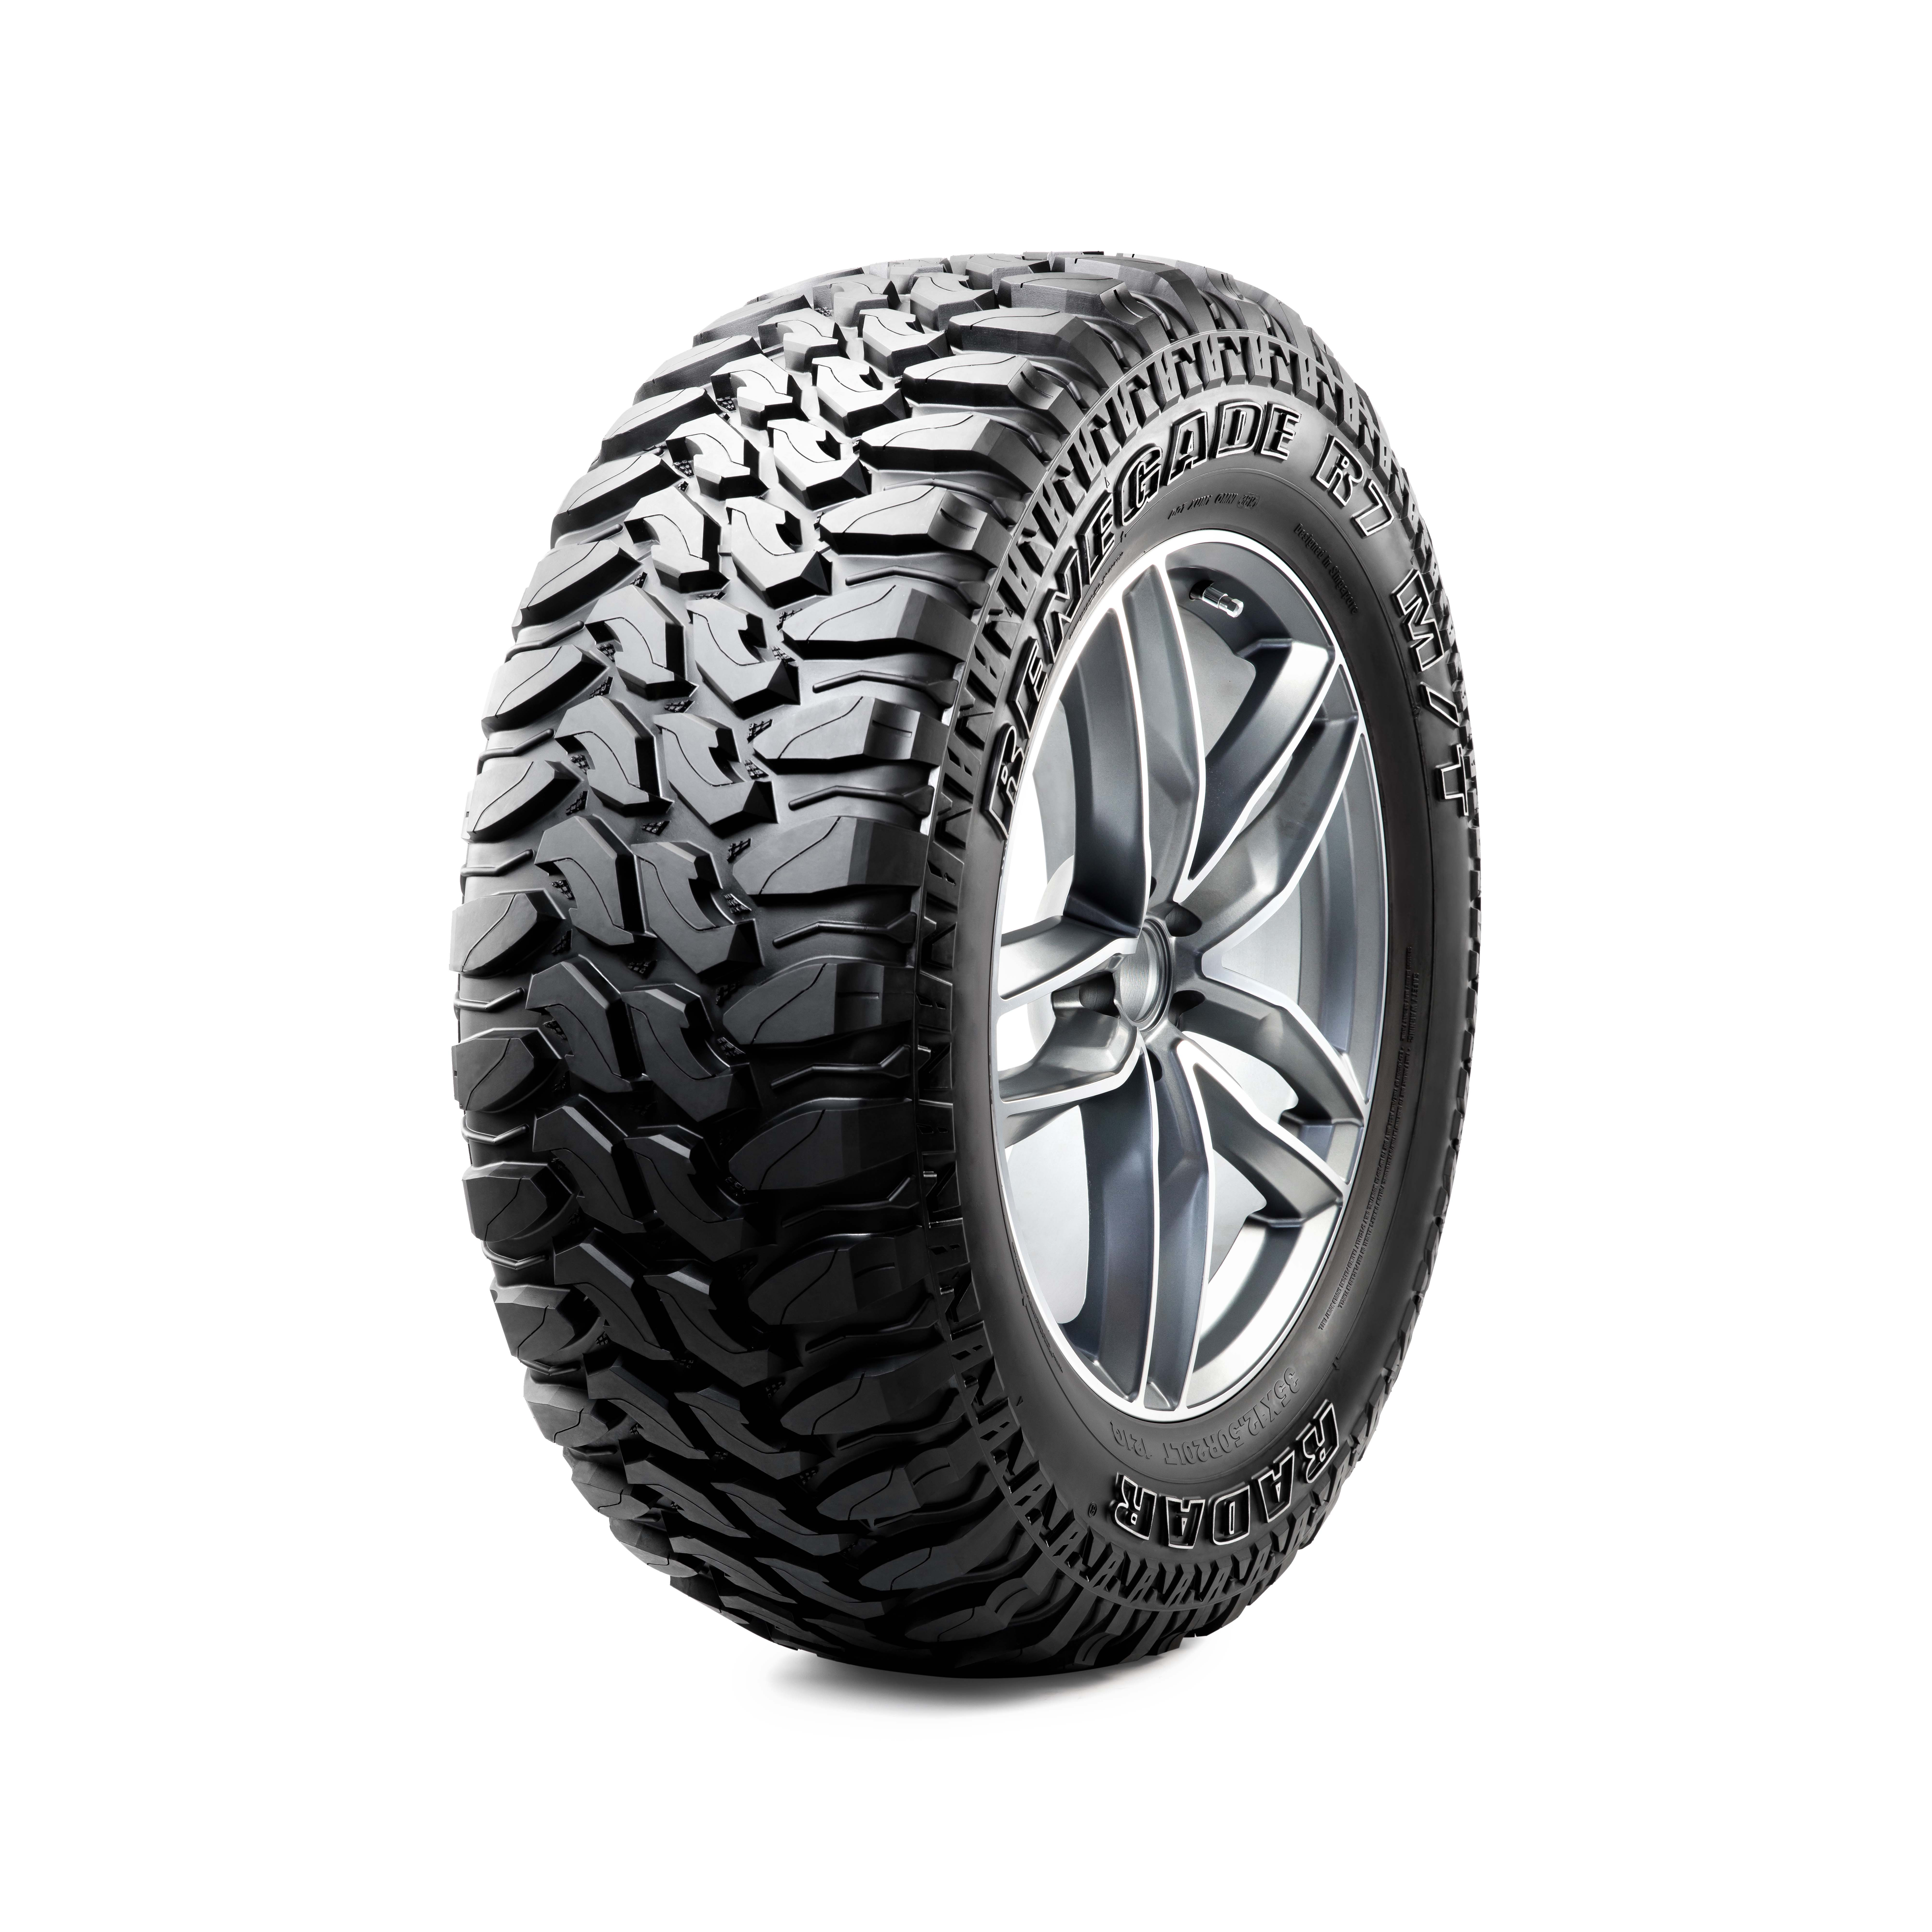 Omni United Rolls Out More Sizes for Renegade R7 M/T